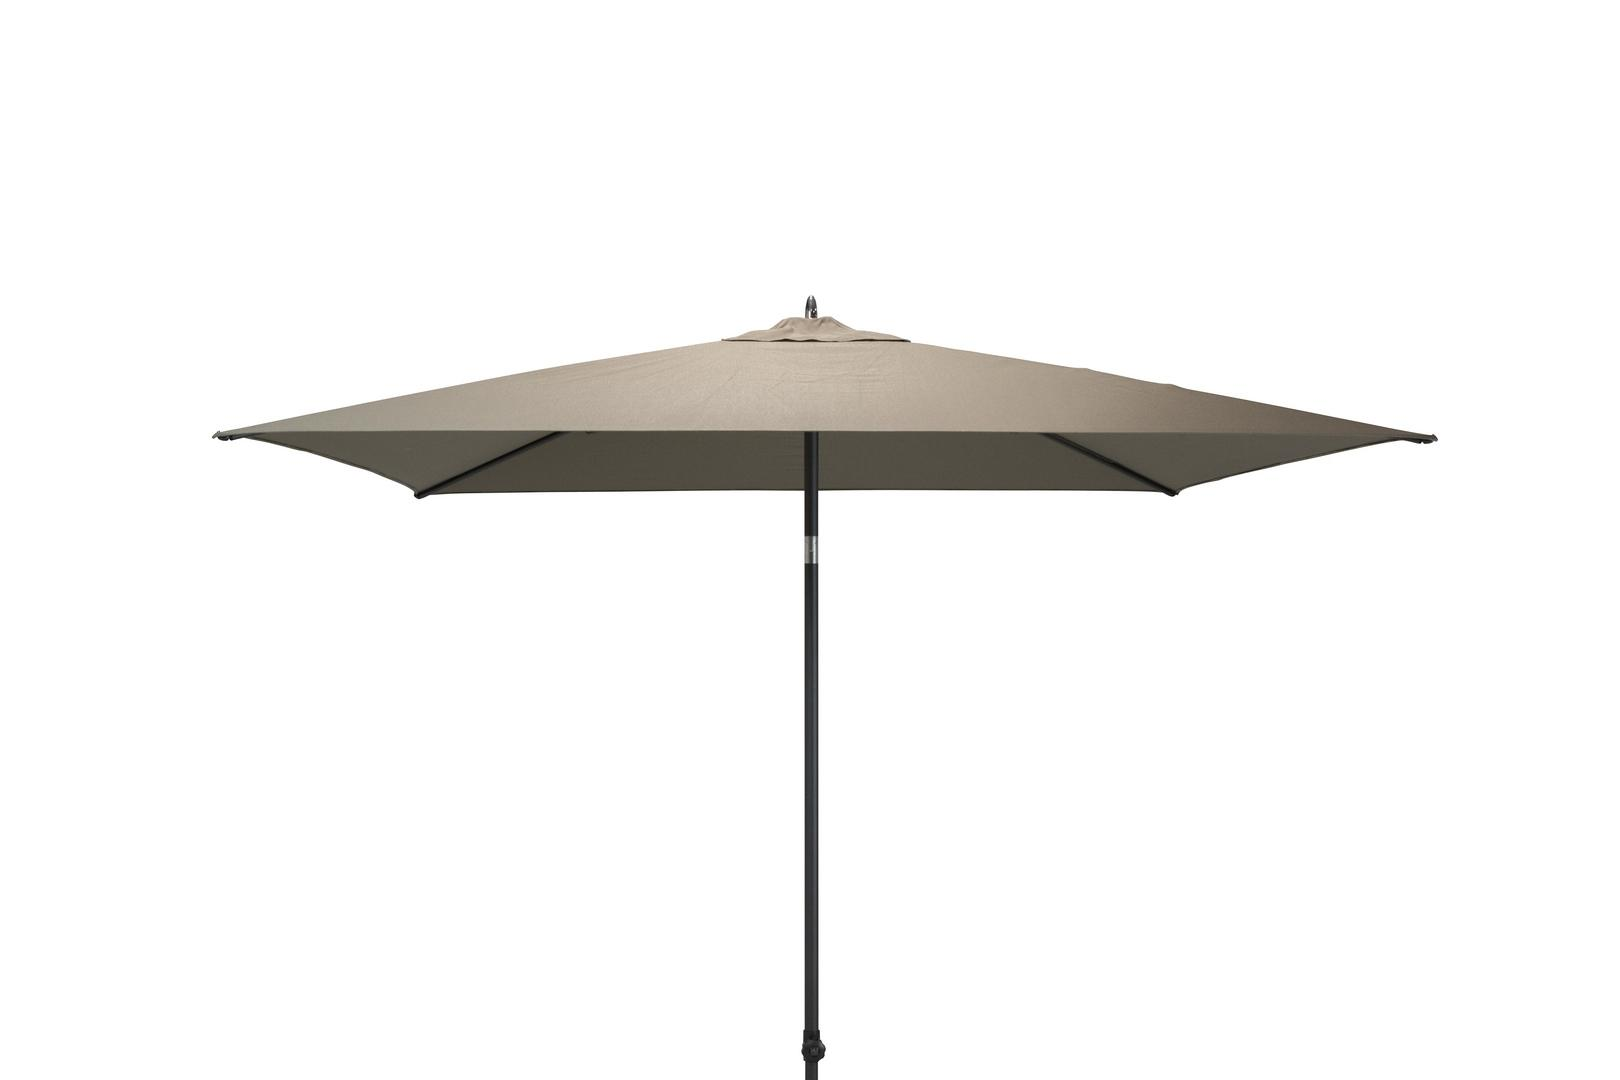 4 Seasons Outdoor Azzurro 2,5 x 2,5m parasol Taupe